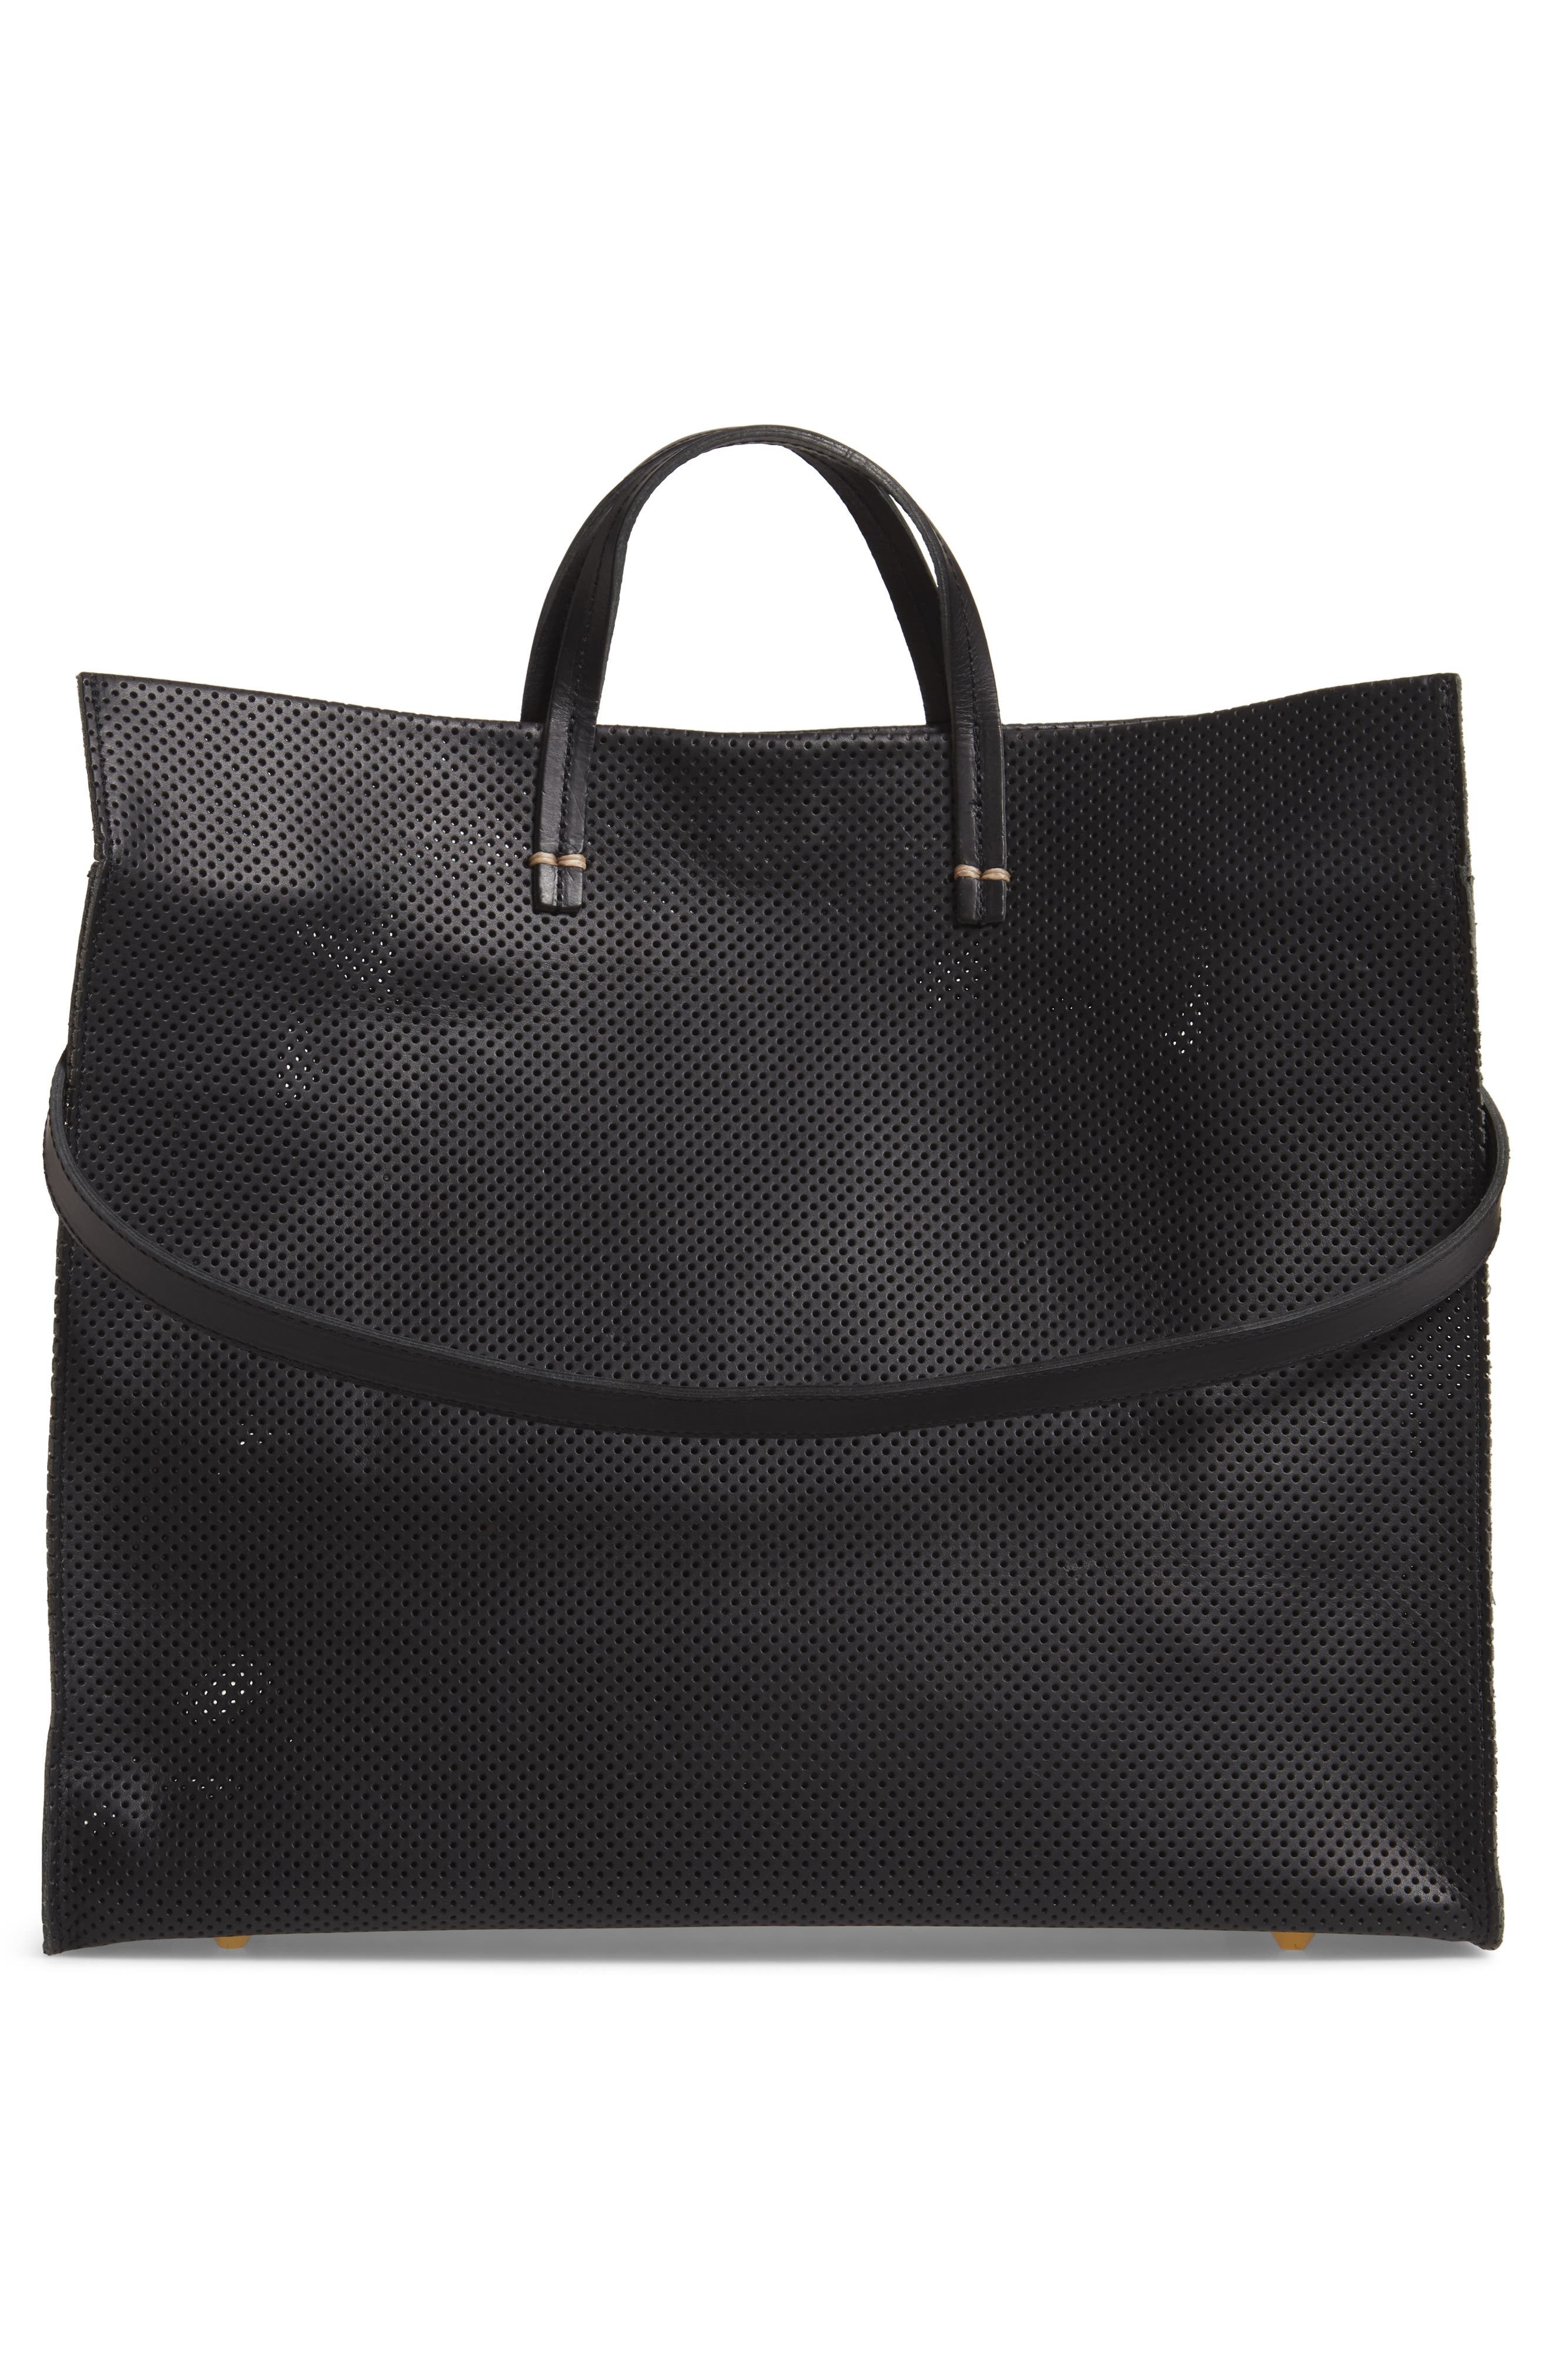 Simple Perforated Leather Tote,                             Alternate thumbnail 3, color,                             BLACK PERF